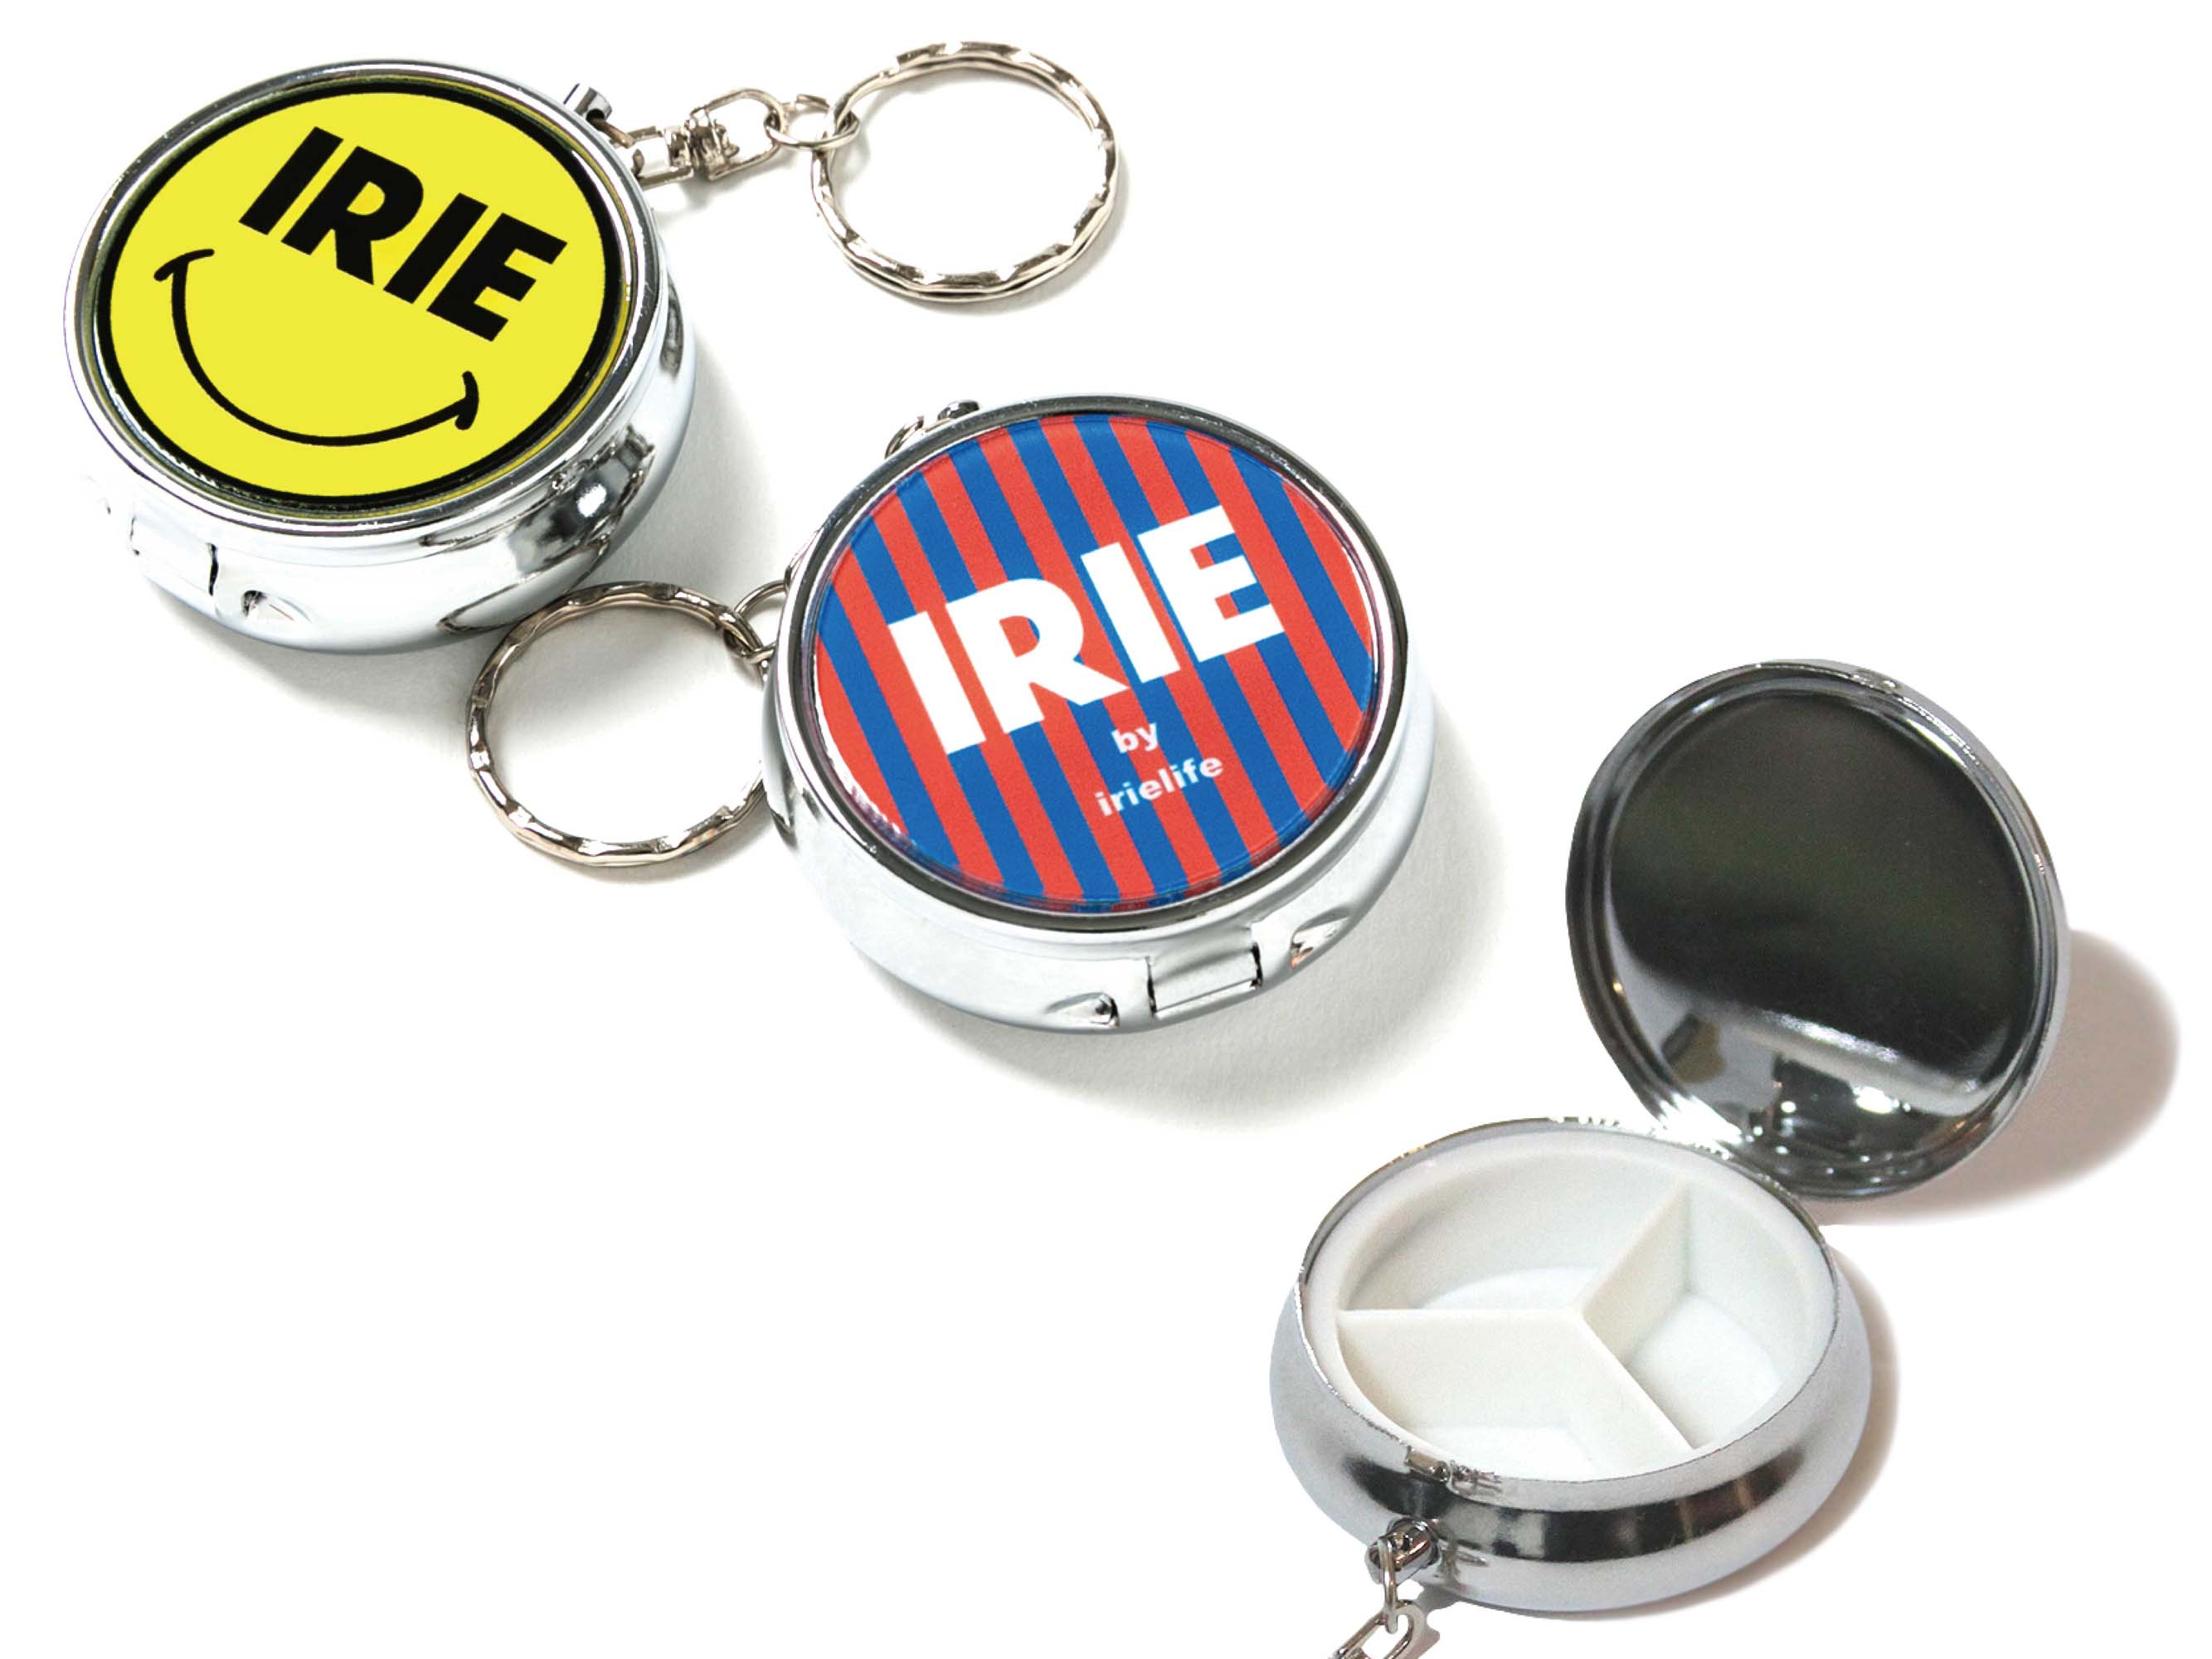 IRIE PILL CASE KEYHOLDER - IRIE by Irielife